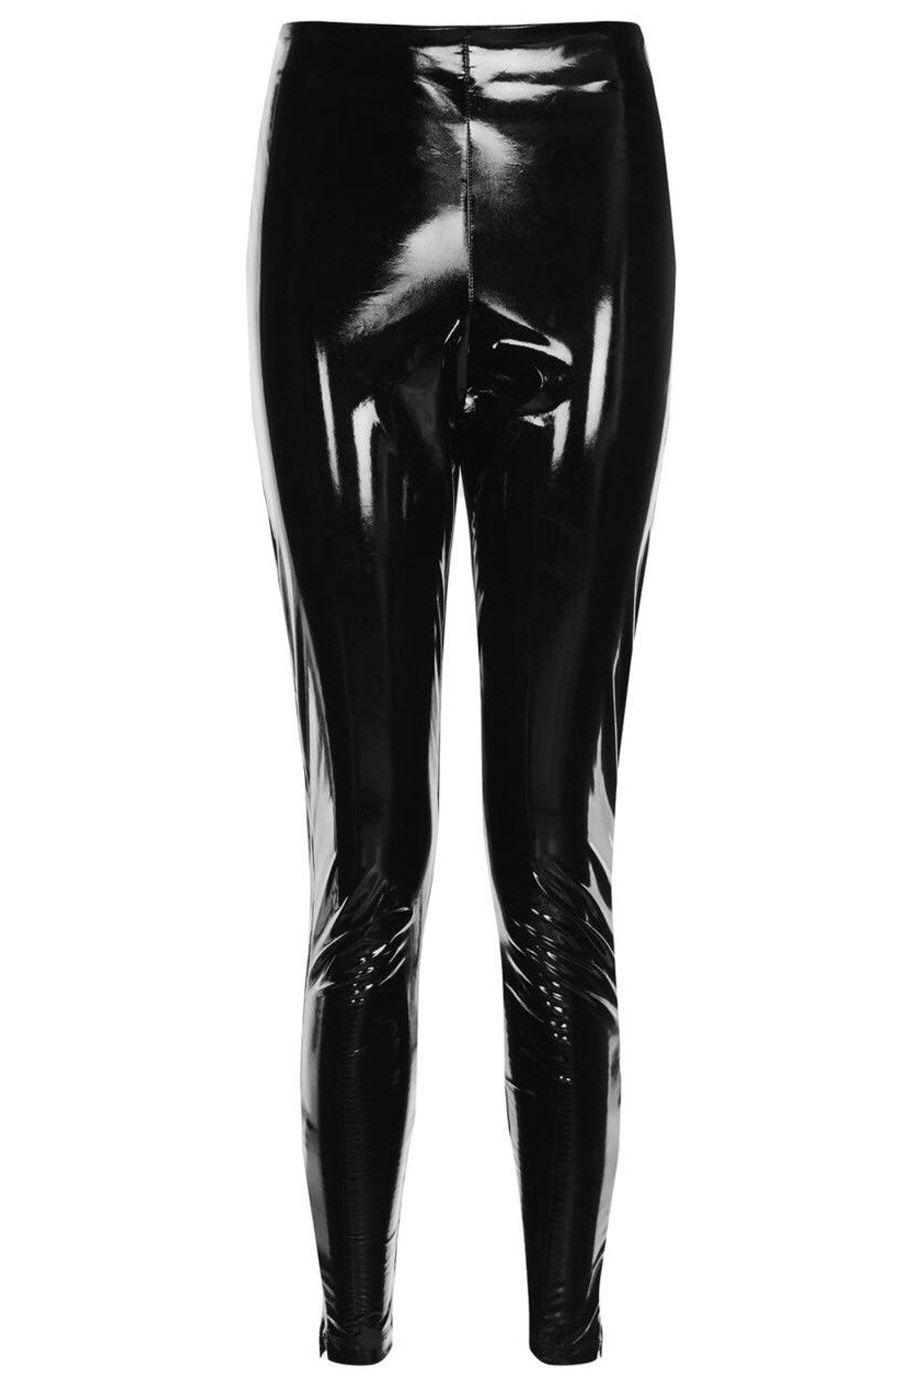 official price 100% authentic the sale of shoes Details about Womens Shiny Wet Look High Waisted Stretchy Vinyl Skinny  Leggings Pants Trouser